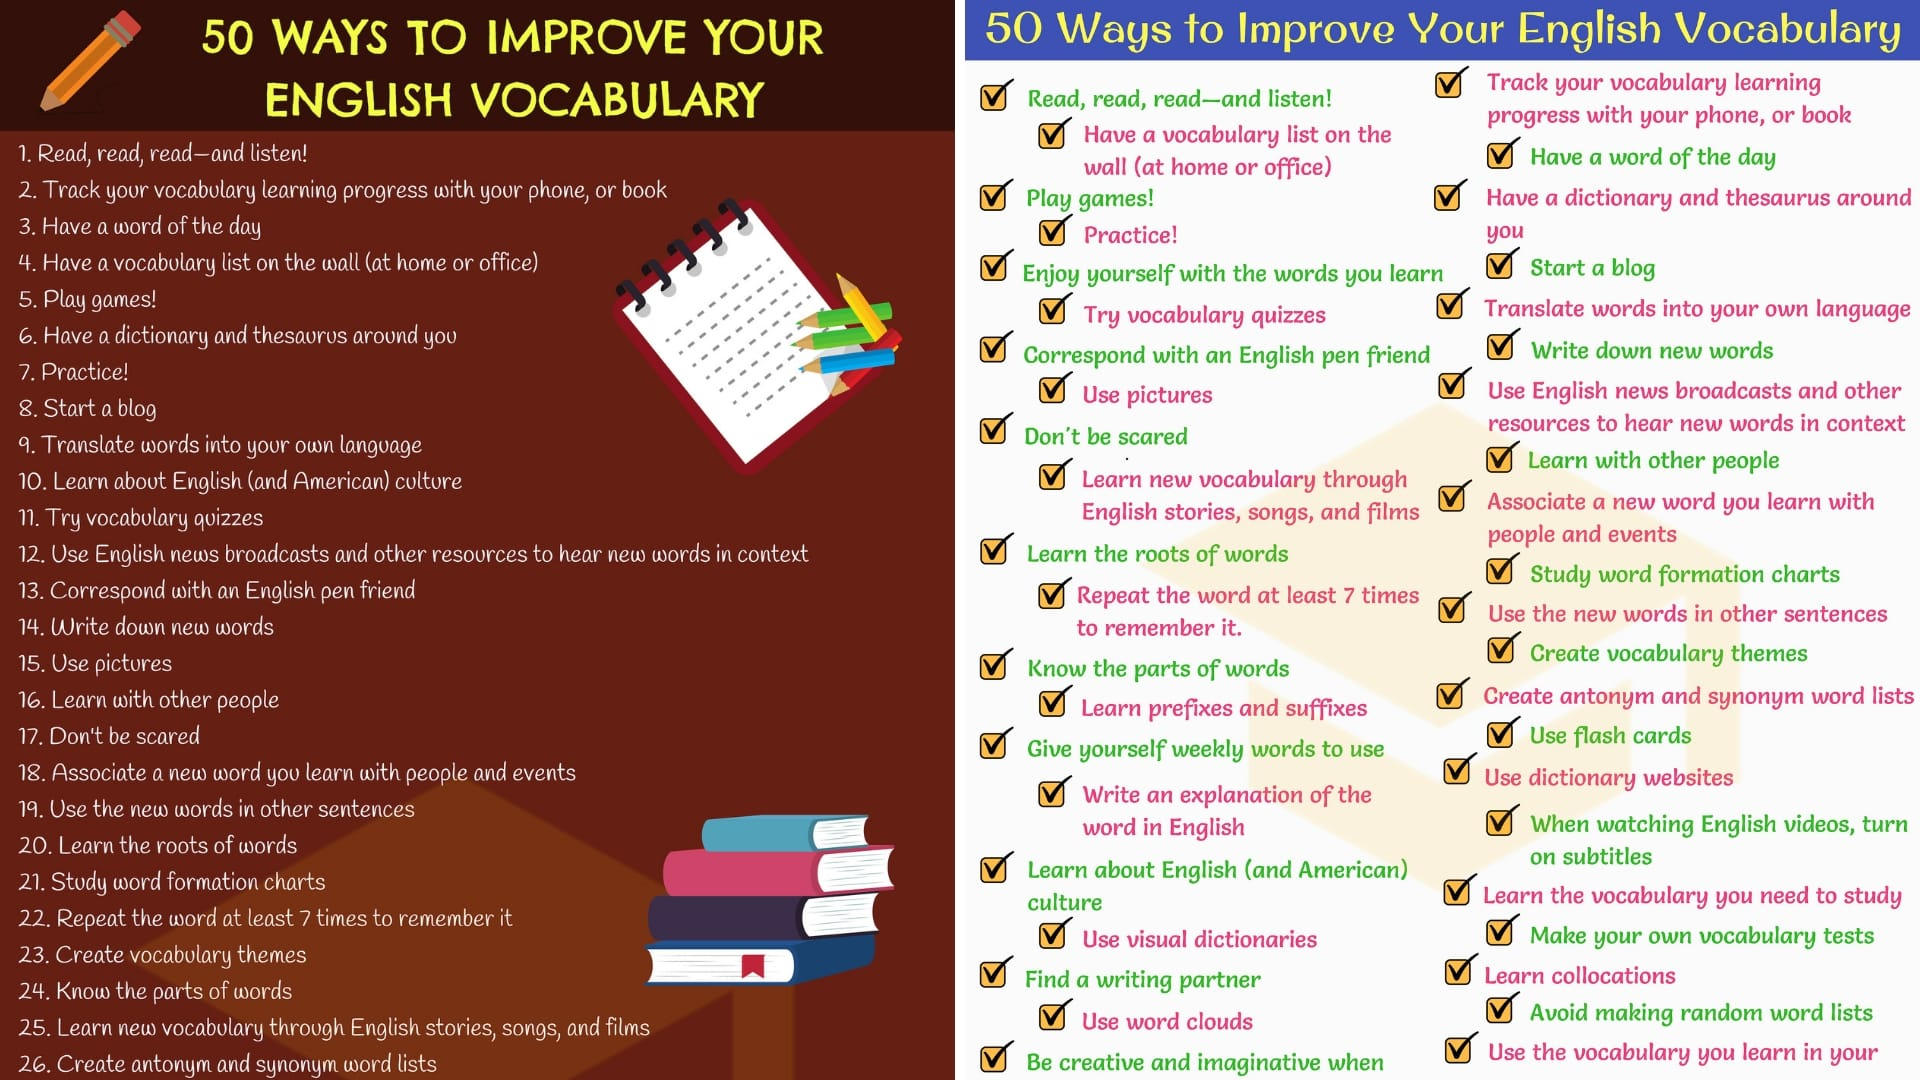 How to Improve Vocabulary: 50 Simple Tips!! 1